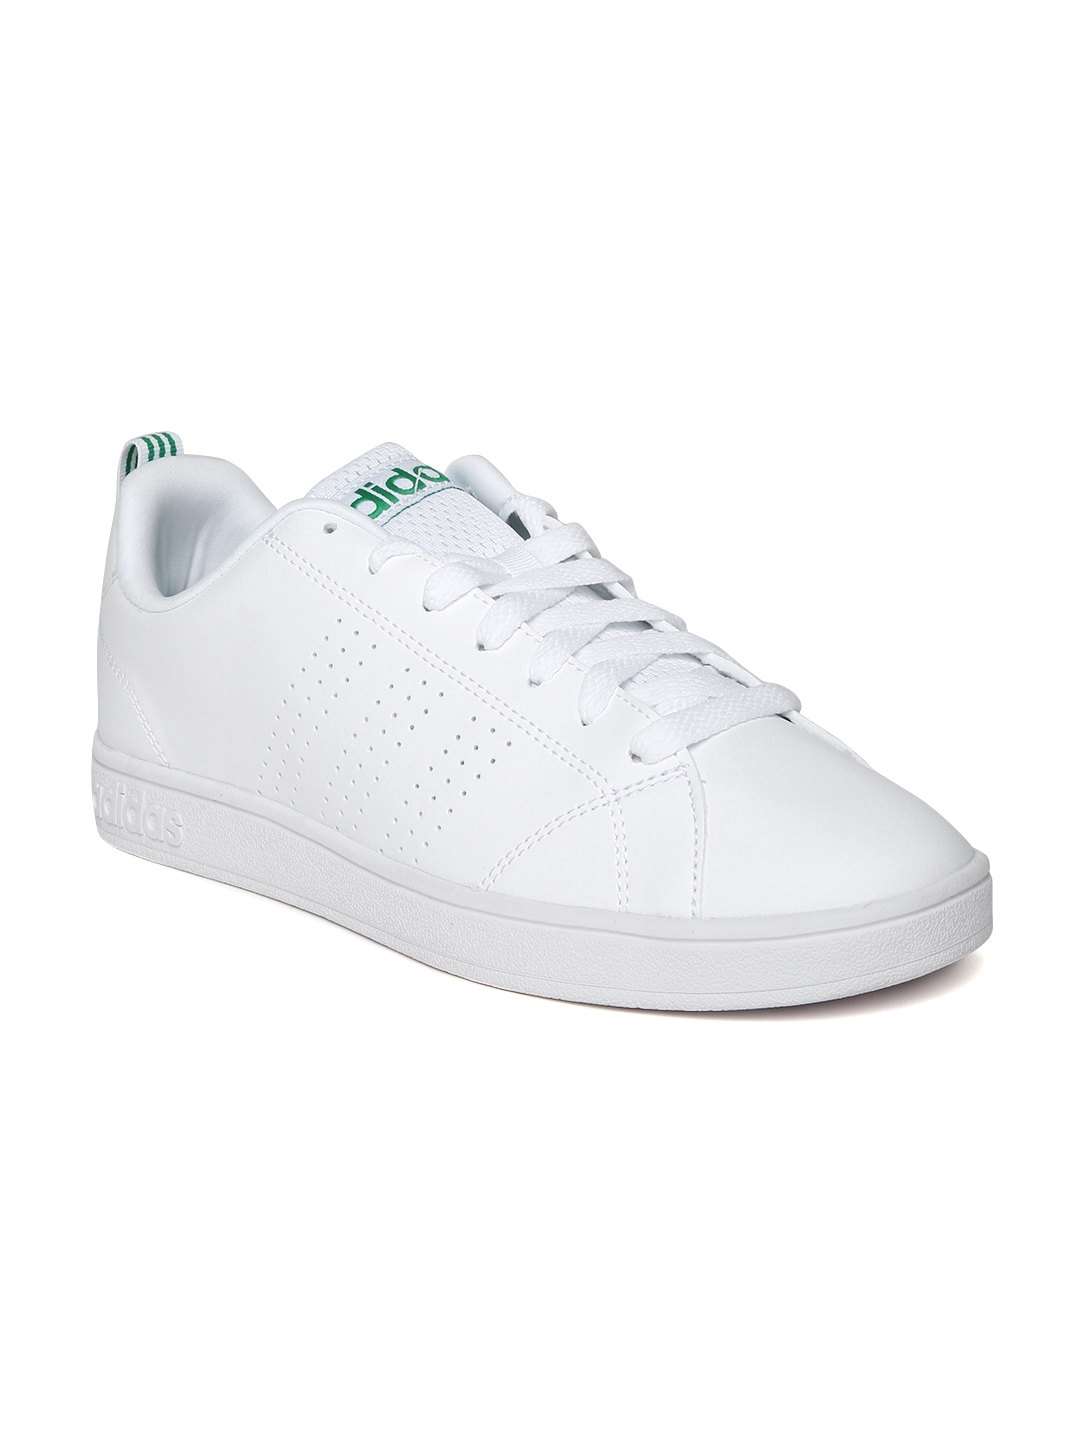 adidas neo shoes white